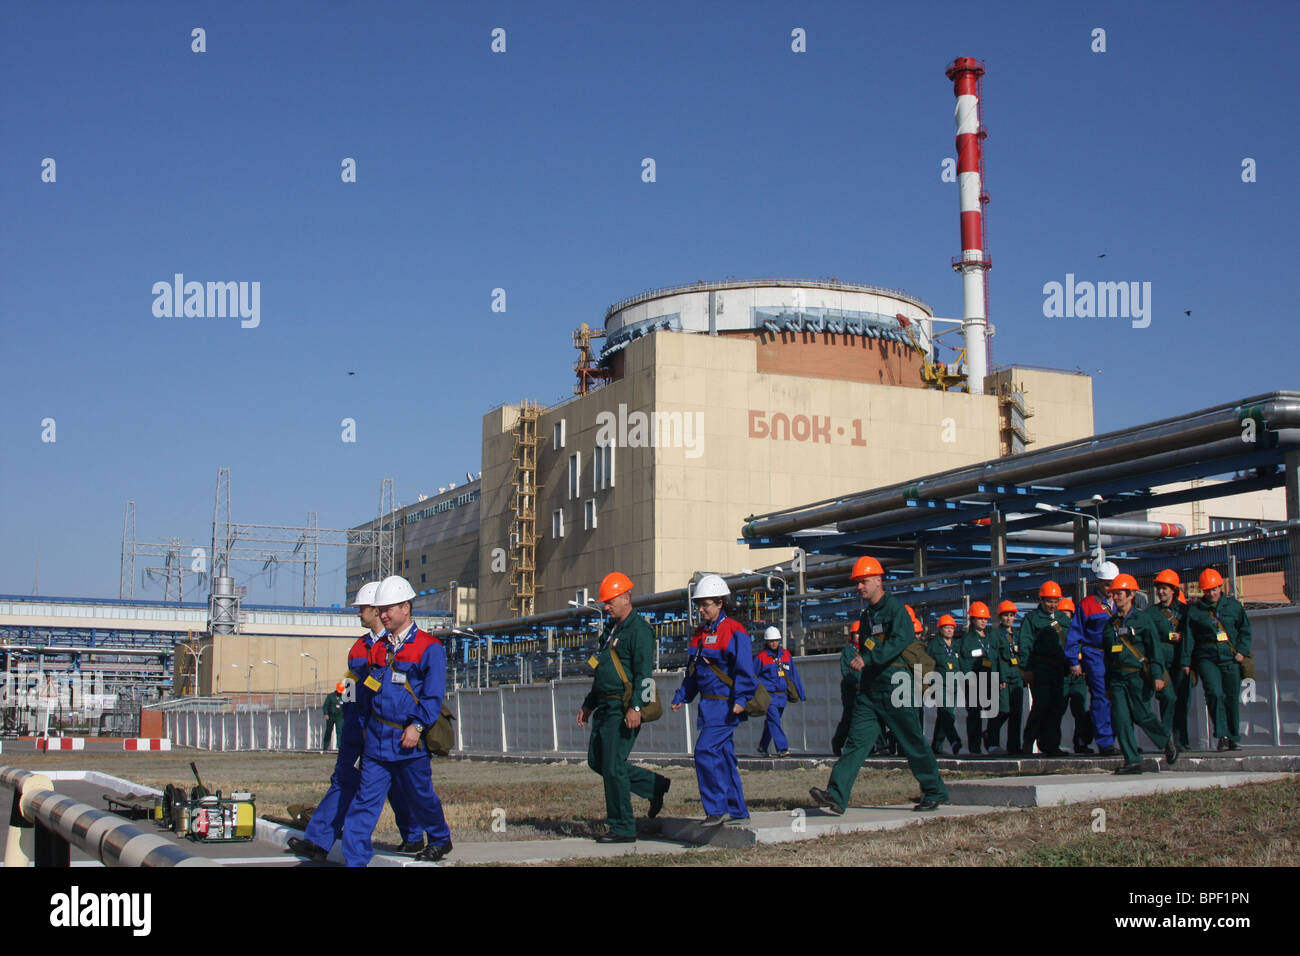 Rostov (previously - Volgodonsk) nuclear power plant - not an easy fate 57